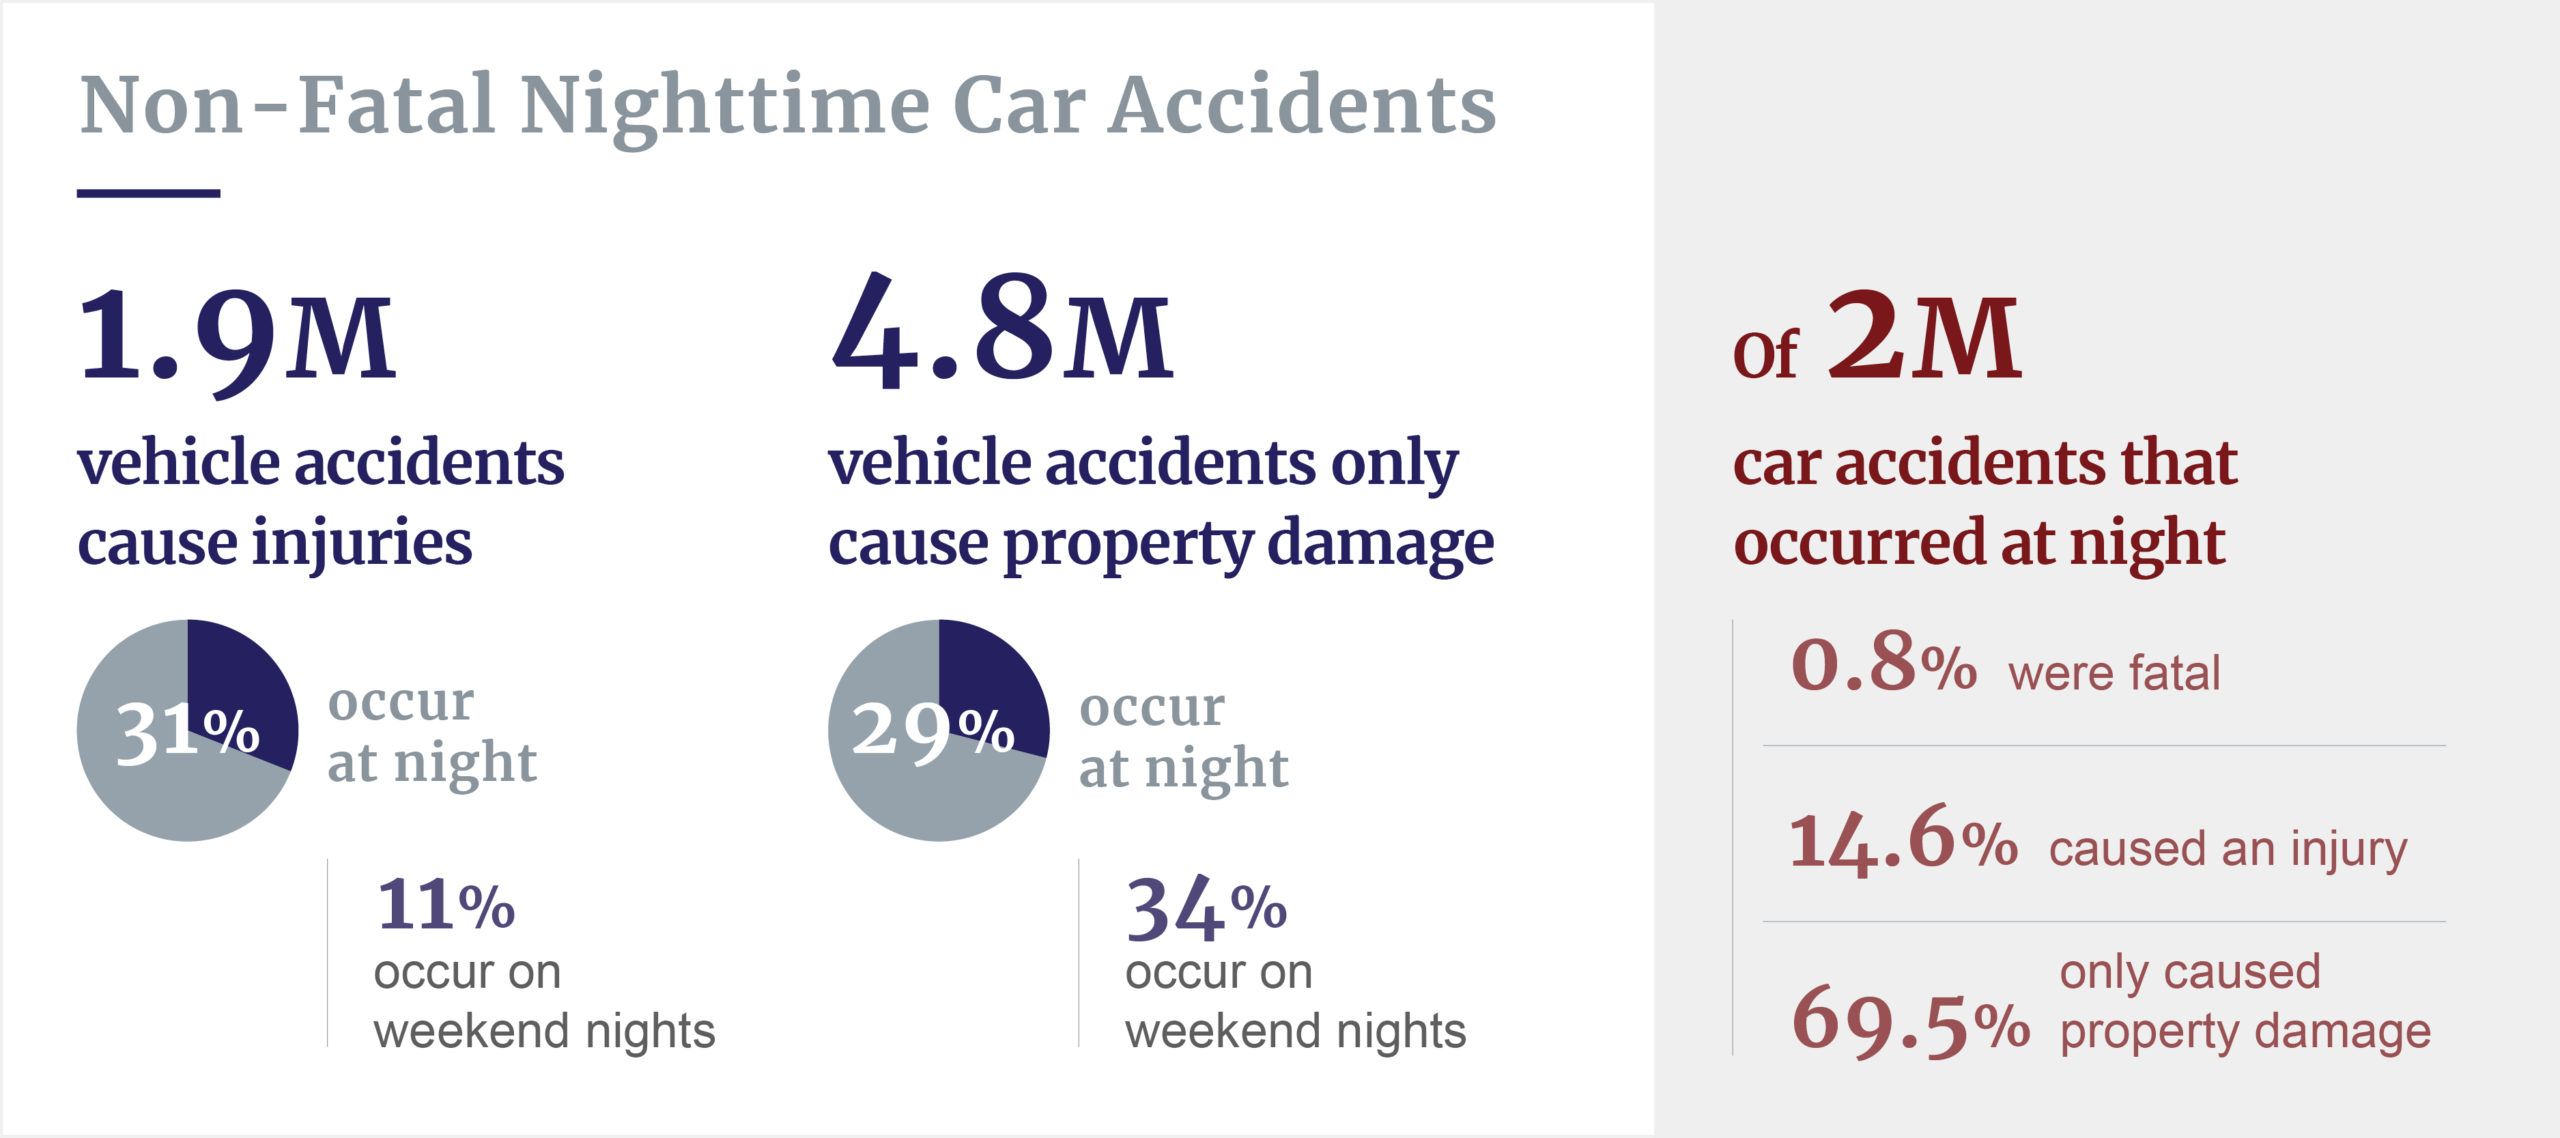 Non-fatal nighttime accident stats